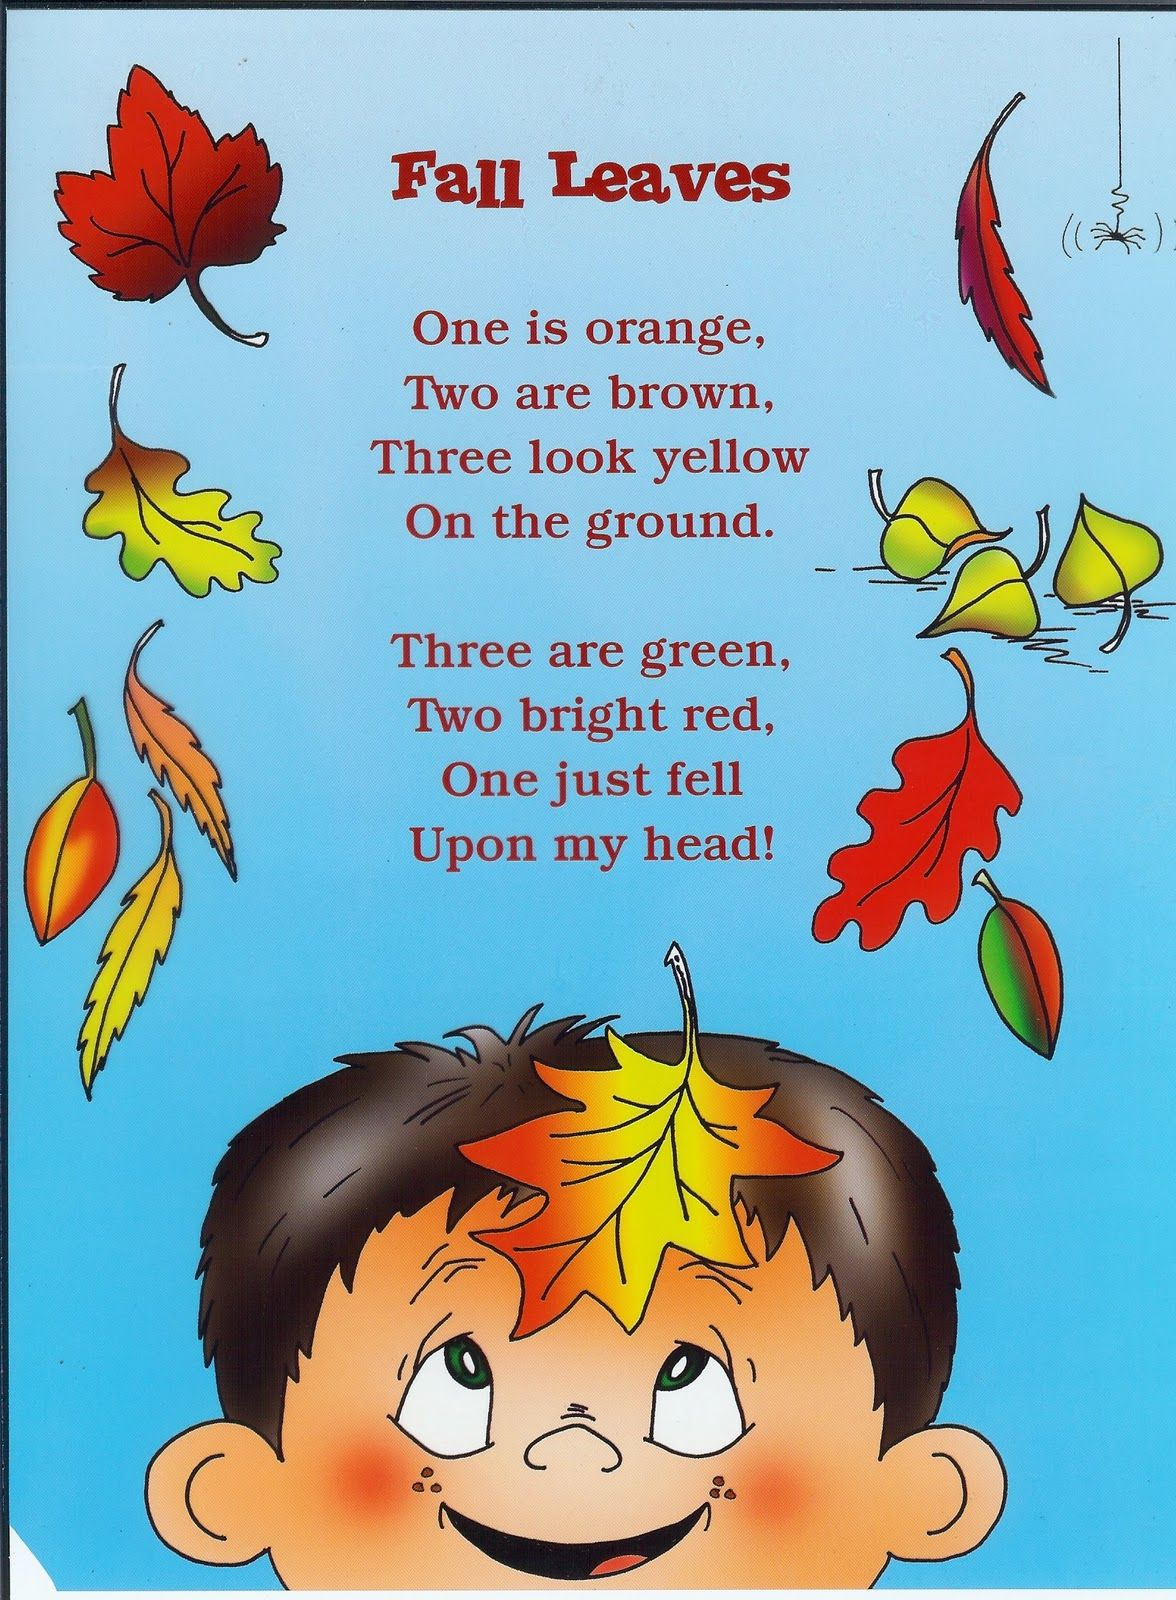 Leaves on pinterest autumn leaves fall leaves crafts and fall - Start With 6 Count Down Fall Leaves Autumn Poem